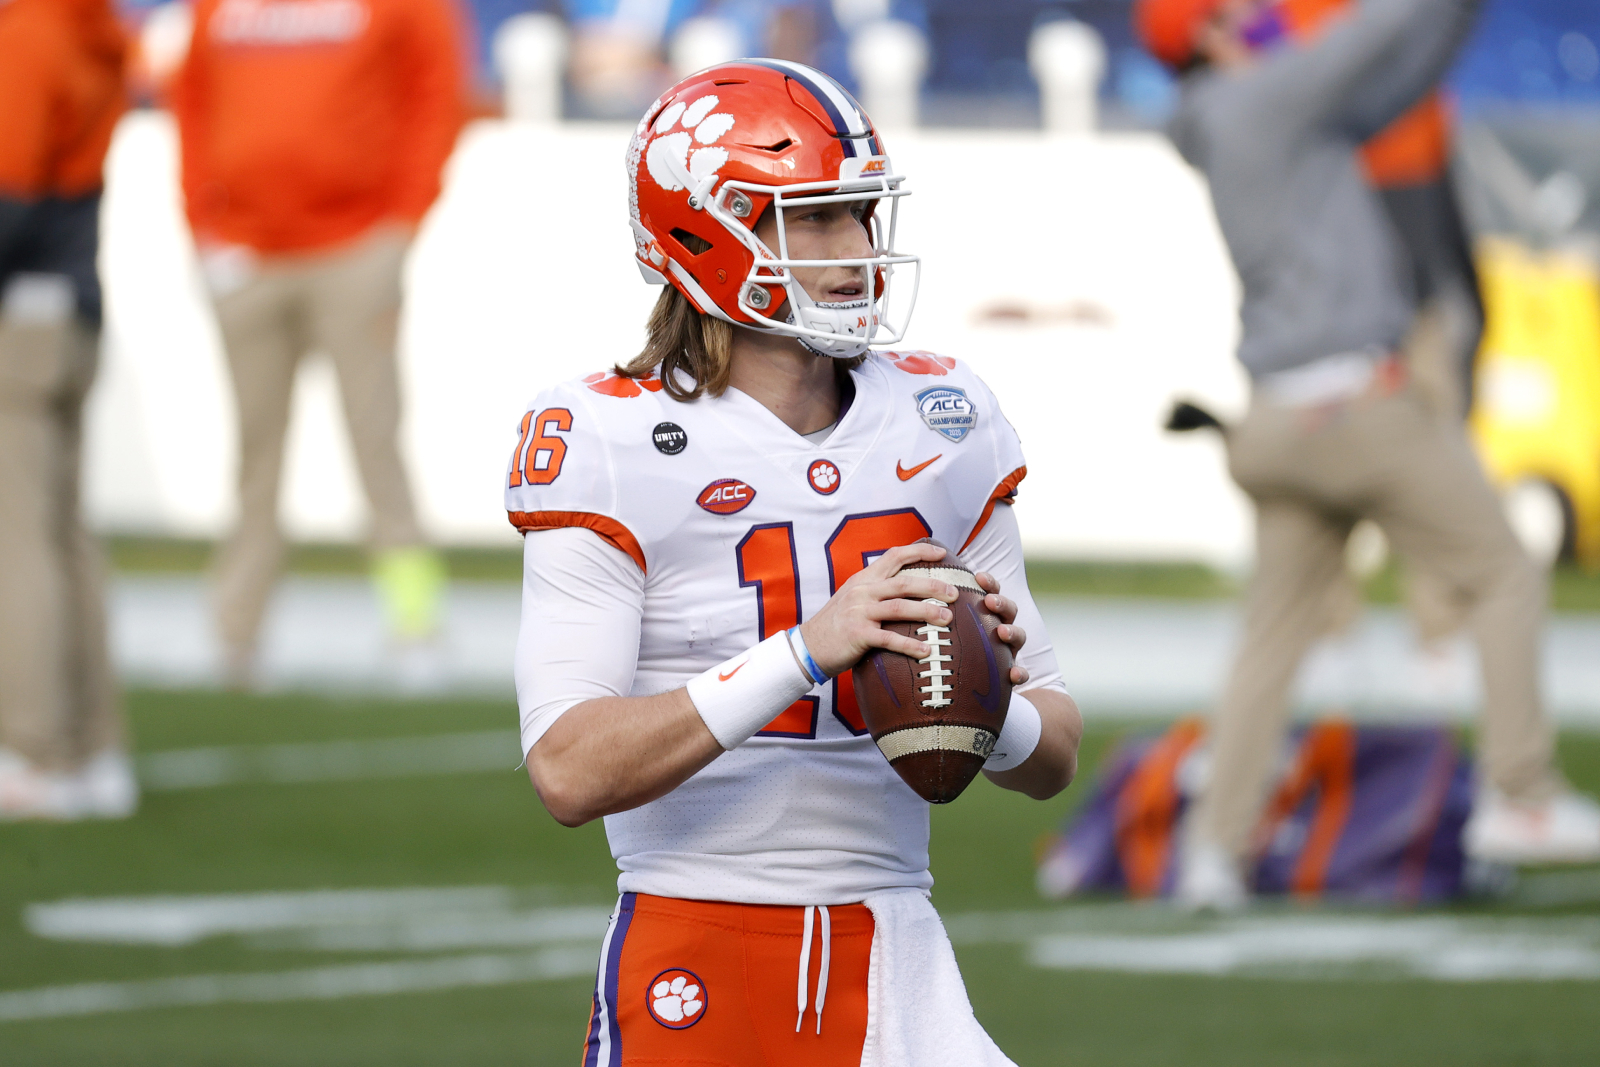 Trevor Lawrence and the Clemson Tigers look to beat Ohio State in the CFP semifinals again. However, they just received horrible news.